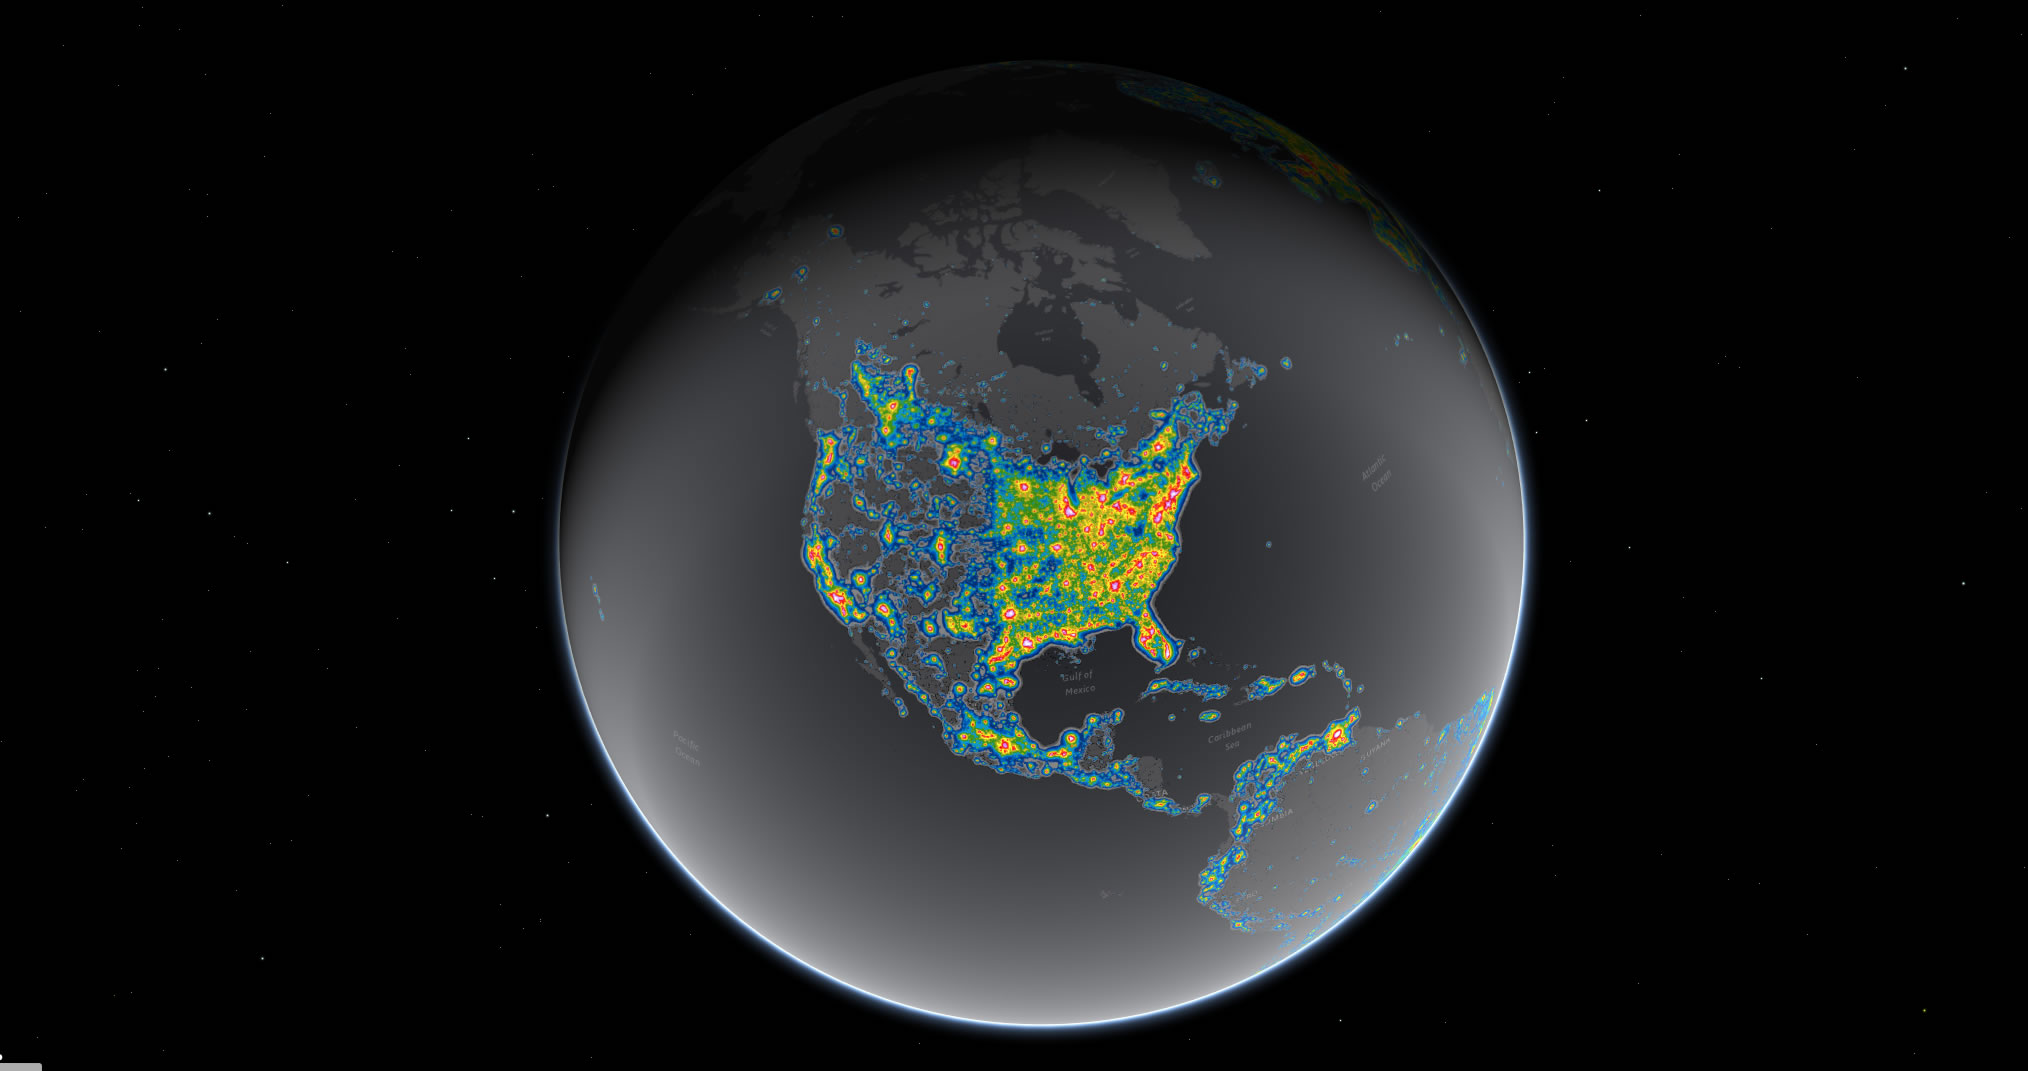 Northwest Wyoming Has Some Of The Darkest Skies In Lower 48 Wjct News - Darkest-places-in-the-us-map